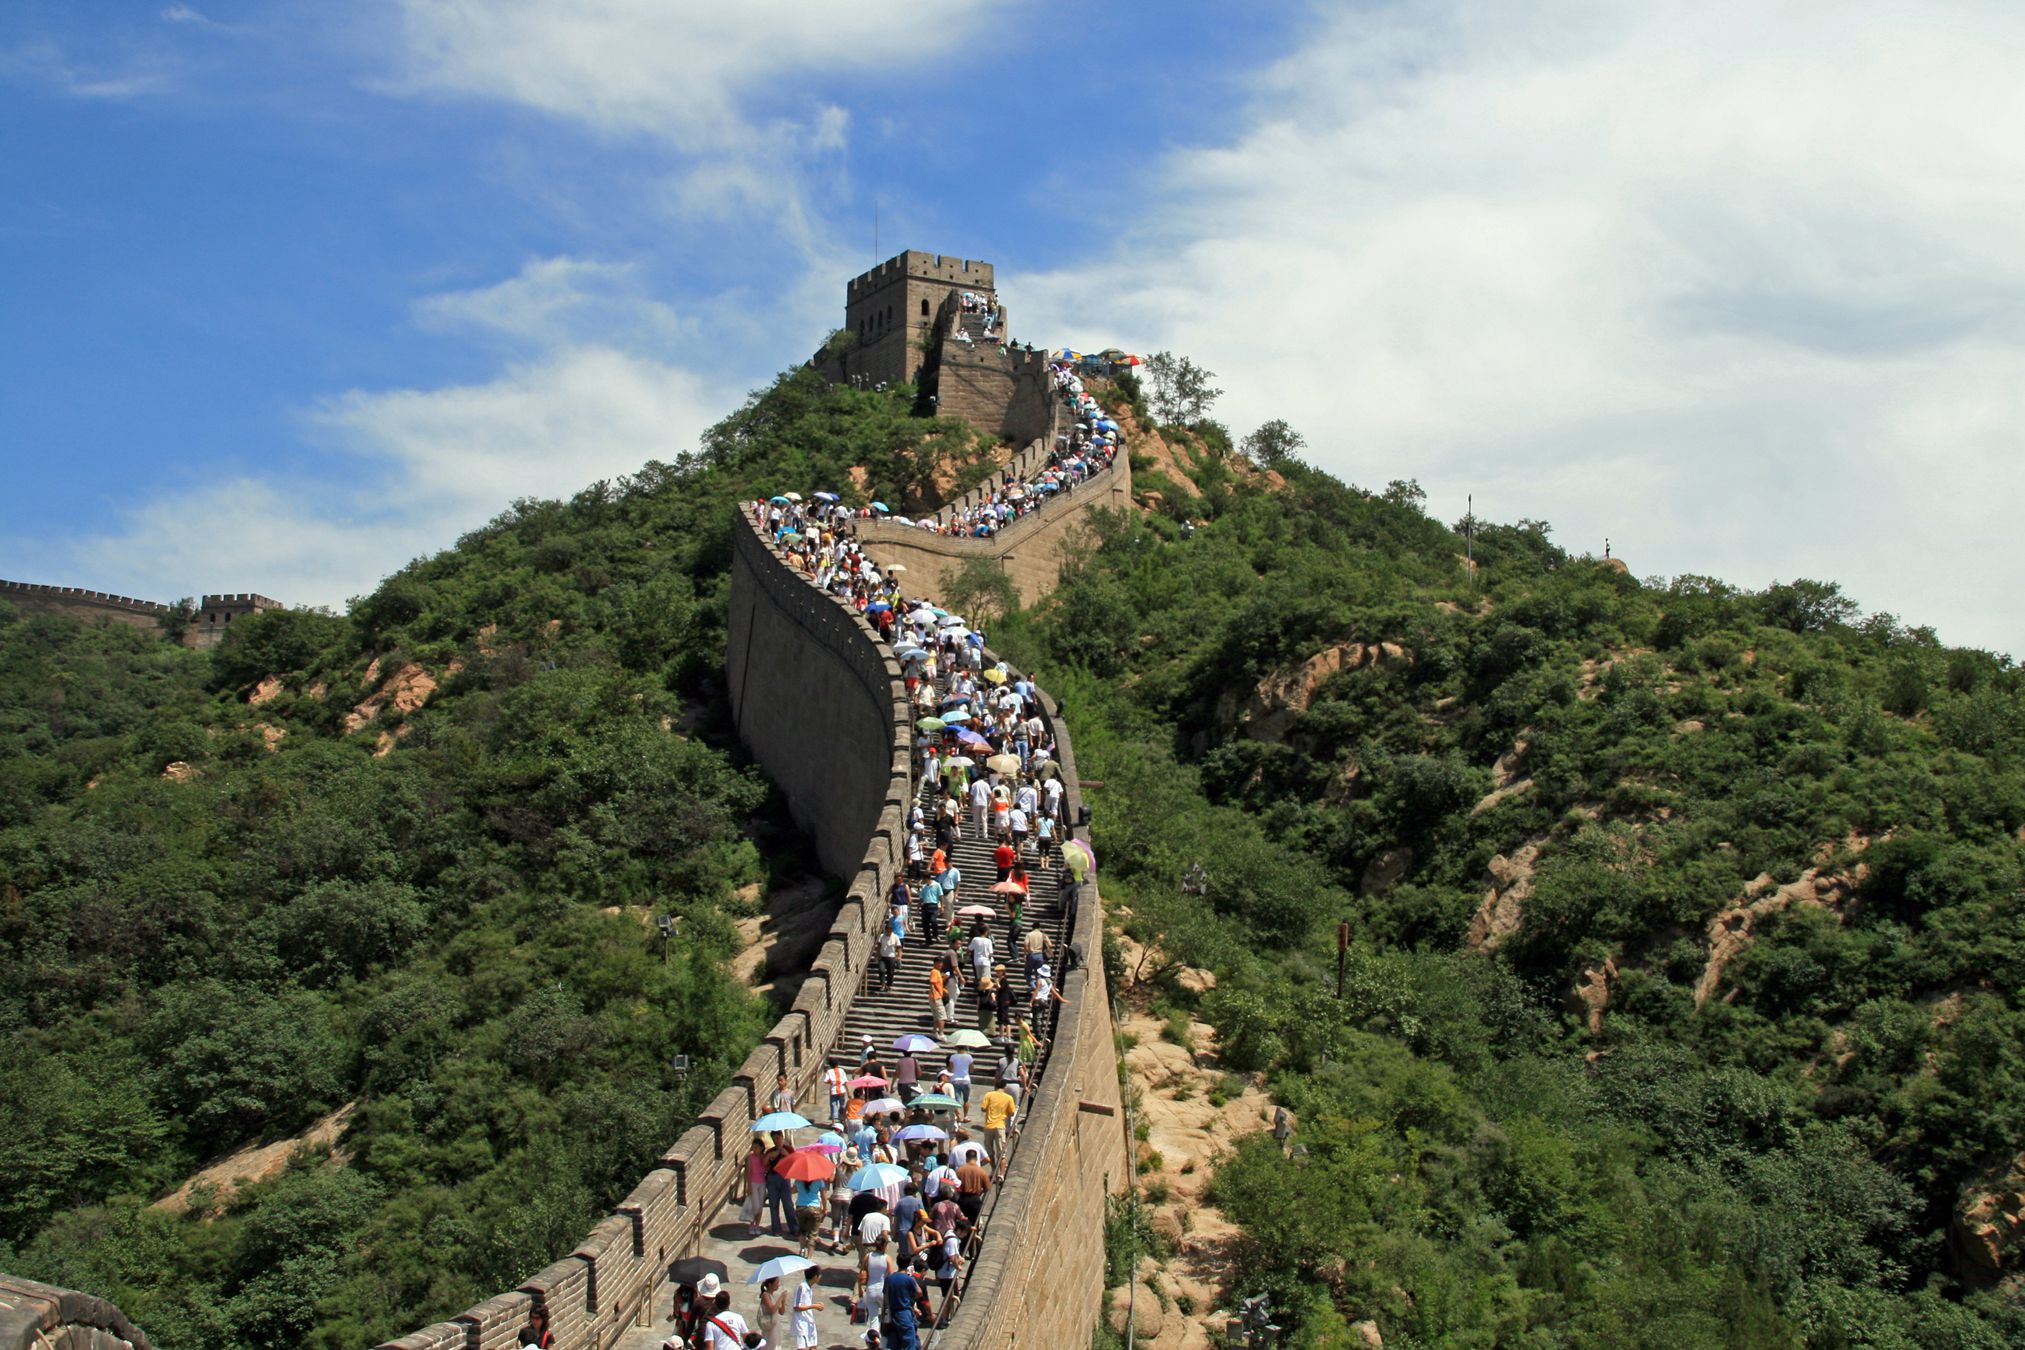 china wall places crowded most muraglia cinese getty beijing immagini pedre gettyimages chinas foto